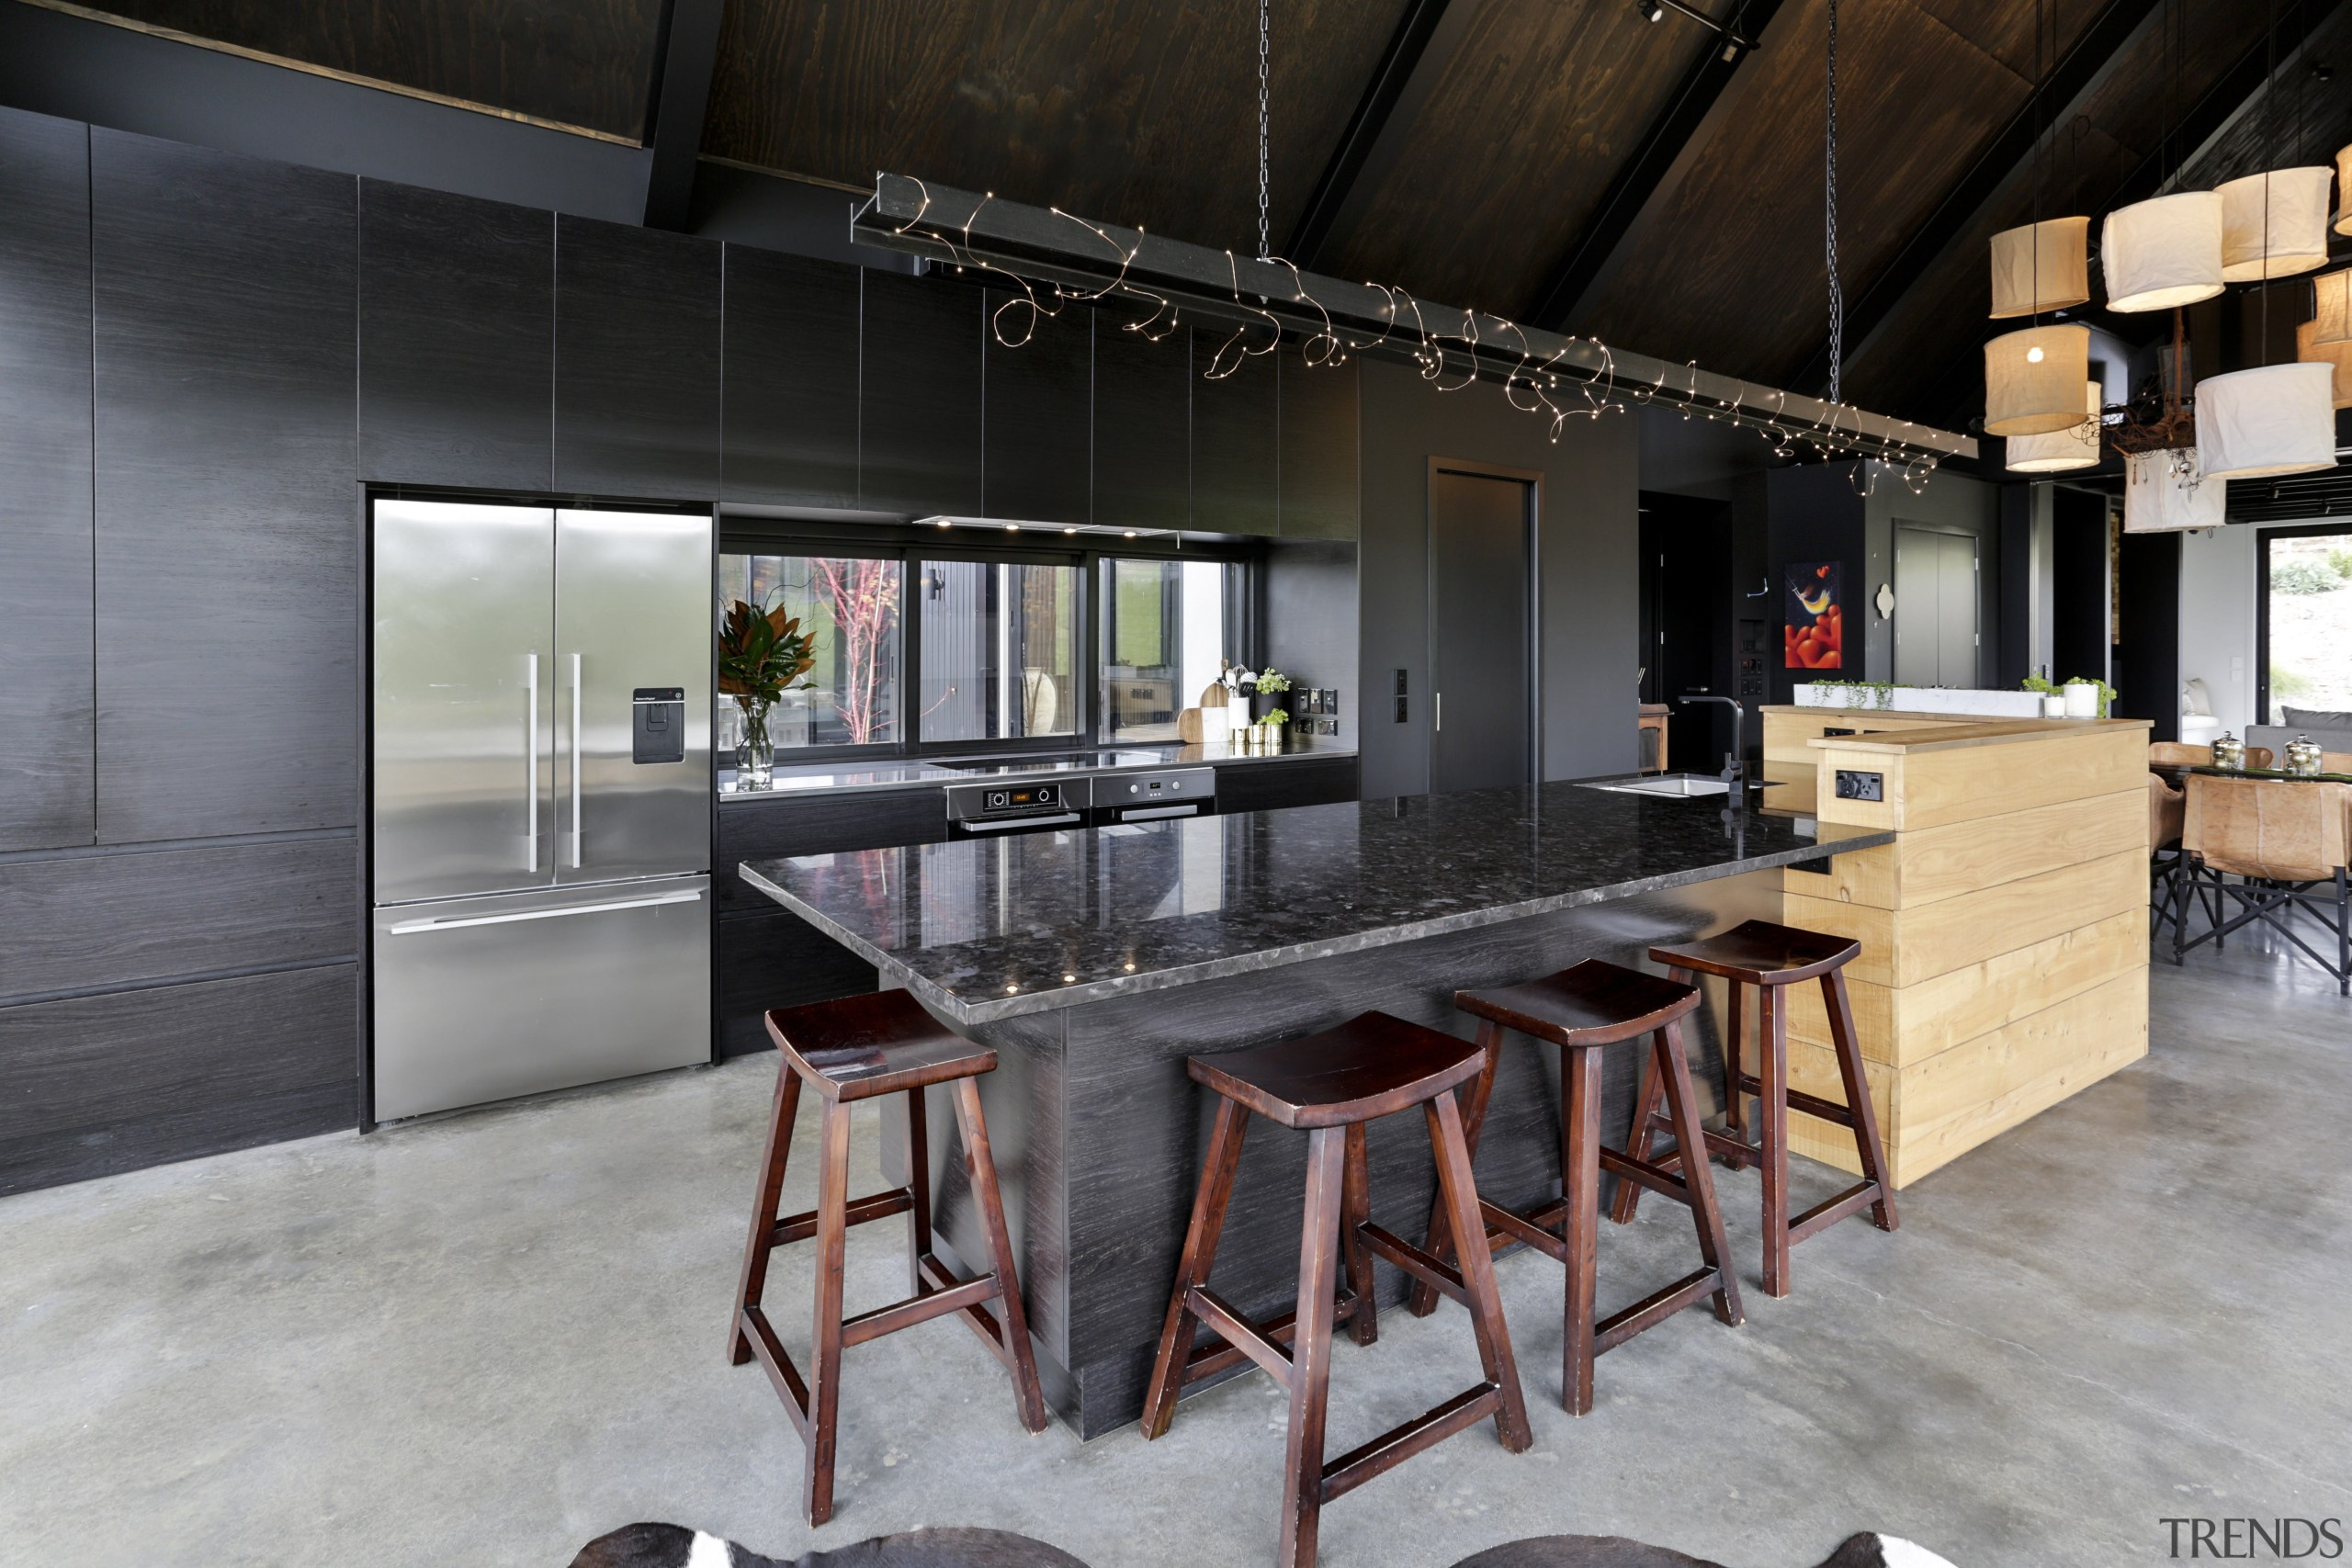 In this semi-industrial kitchen by Carlielle Kitchens a countertop, interior design, kitchen, loft, table, gray, black